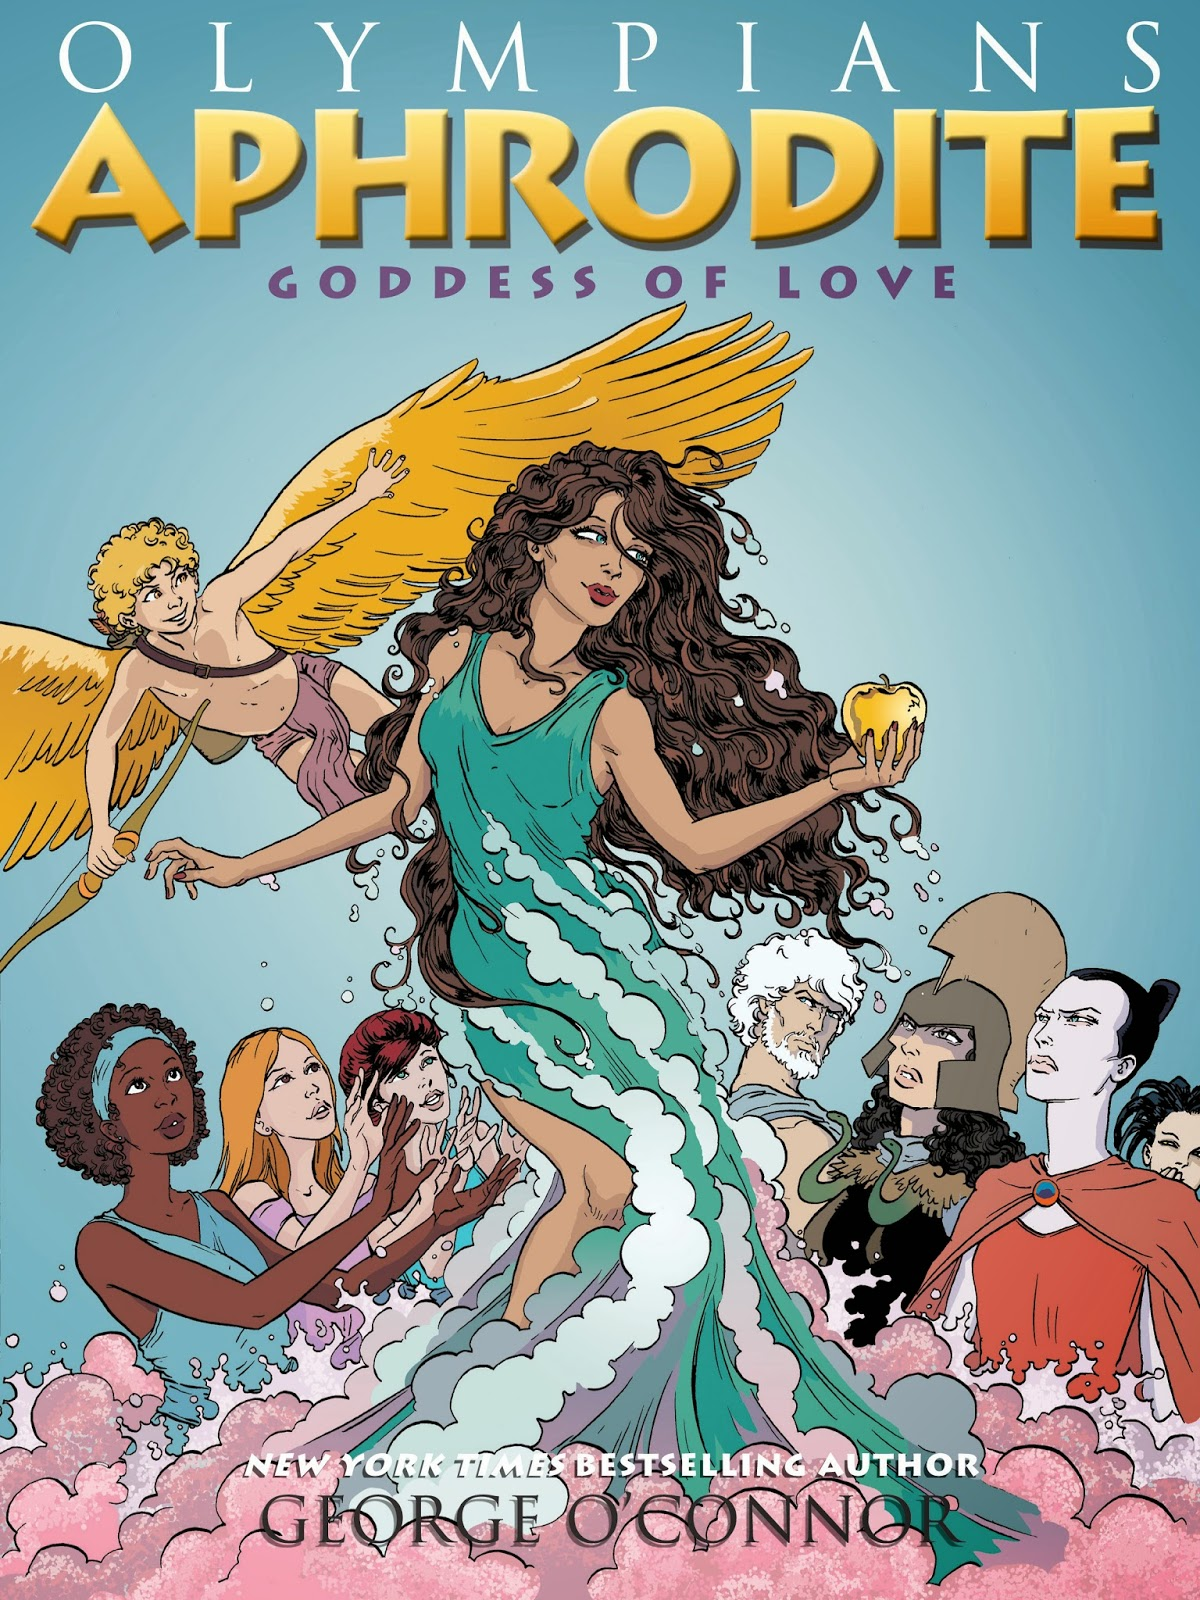 an introduction to the mythology of the olympian goddess aphrodite The olympians: aphrodite and ares aphrodite and ares are eternal lovers, companions, sometimes siblings, sometimes married who become the underlying inspiration for the astrological archetypes of venus and mars.